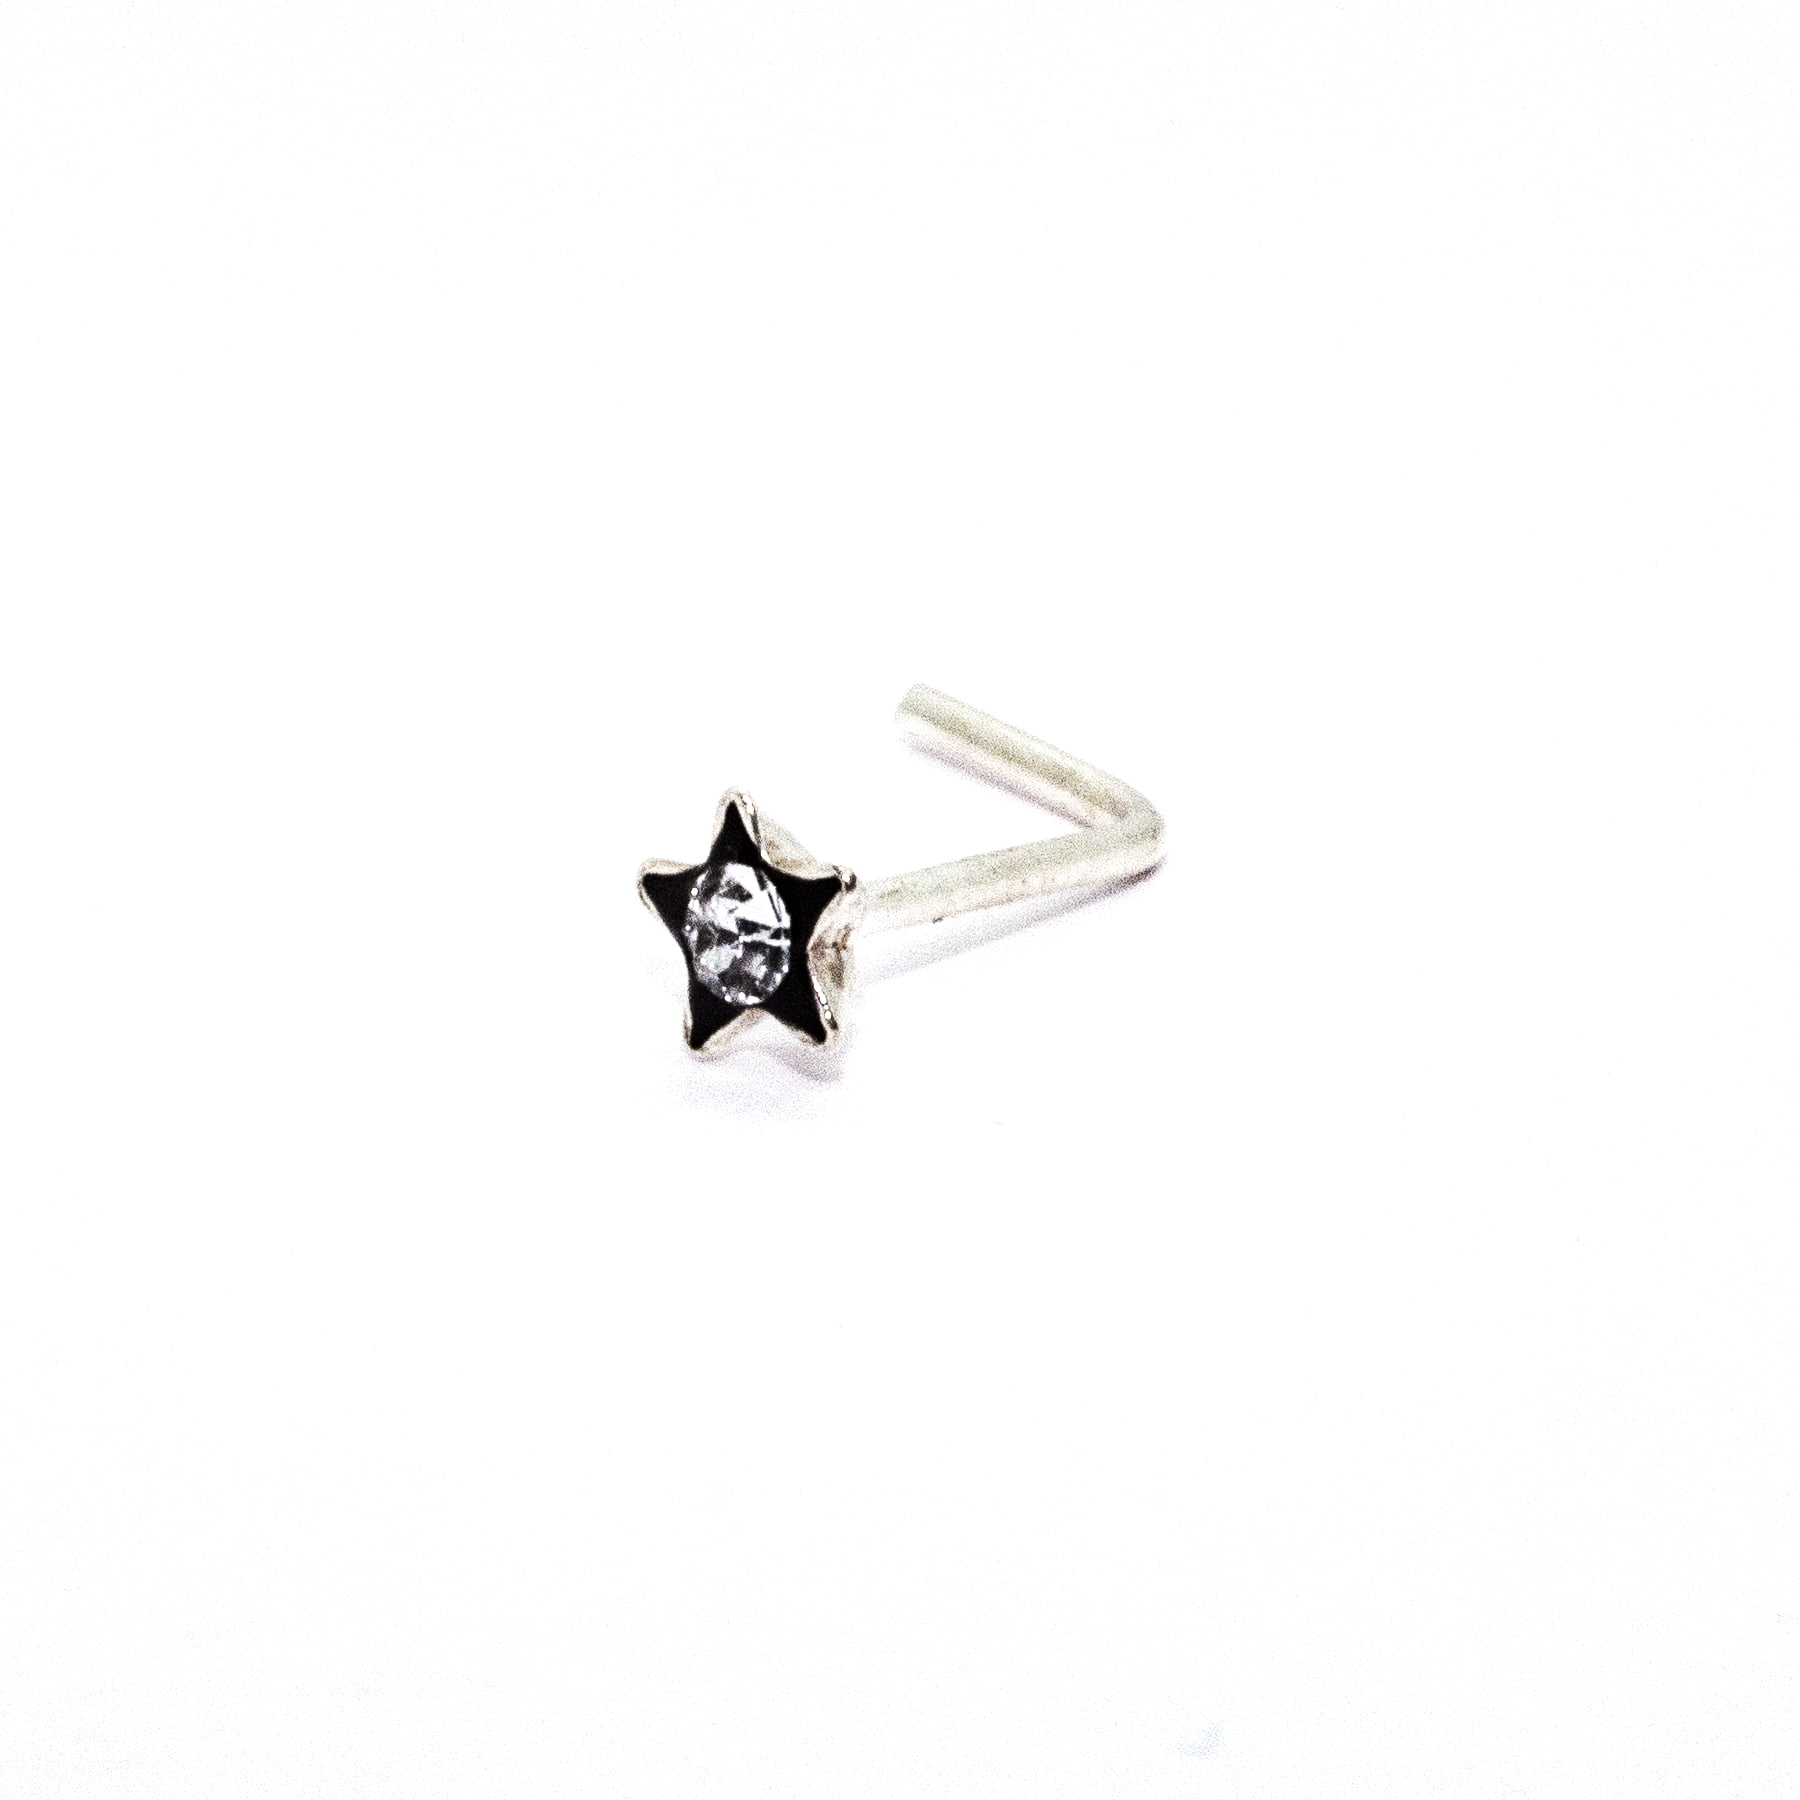 Star with clear crystal nose stud in sterling silver